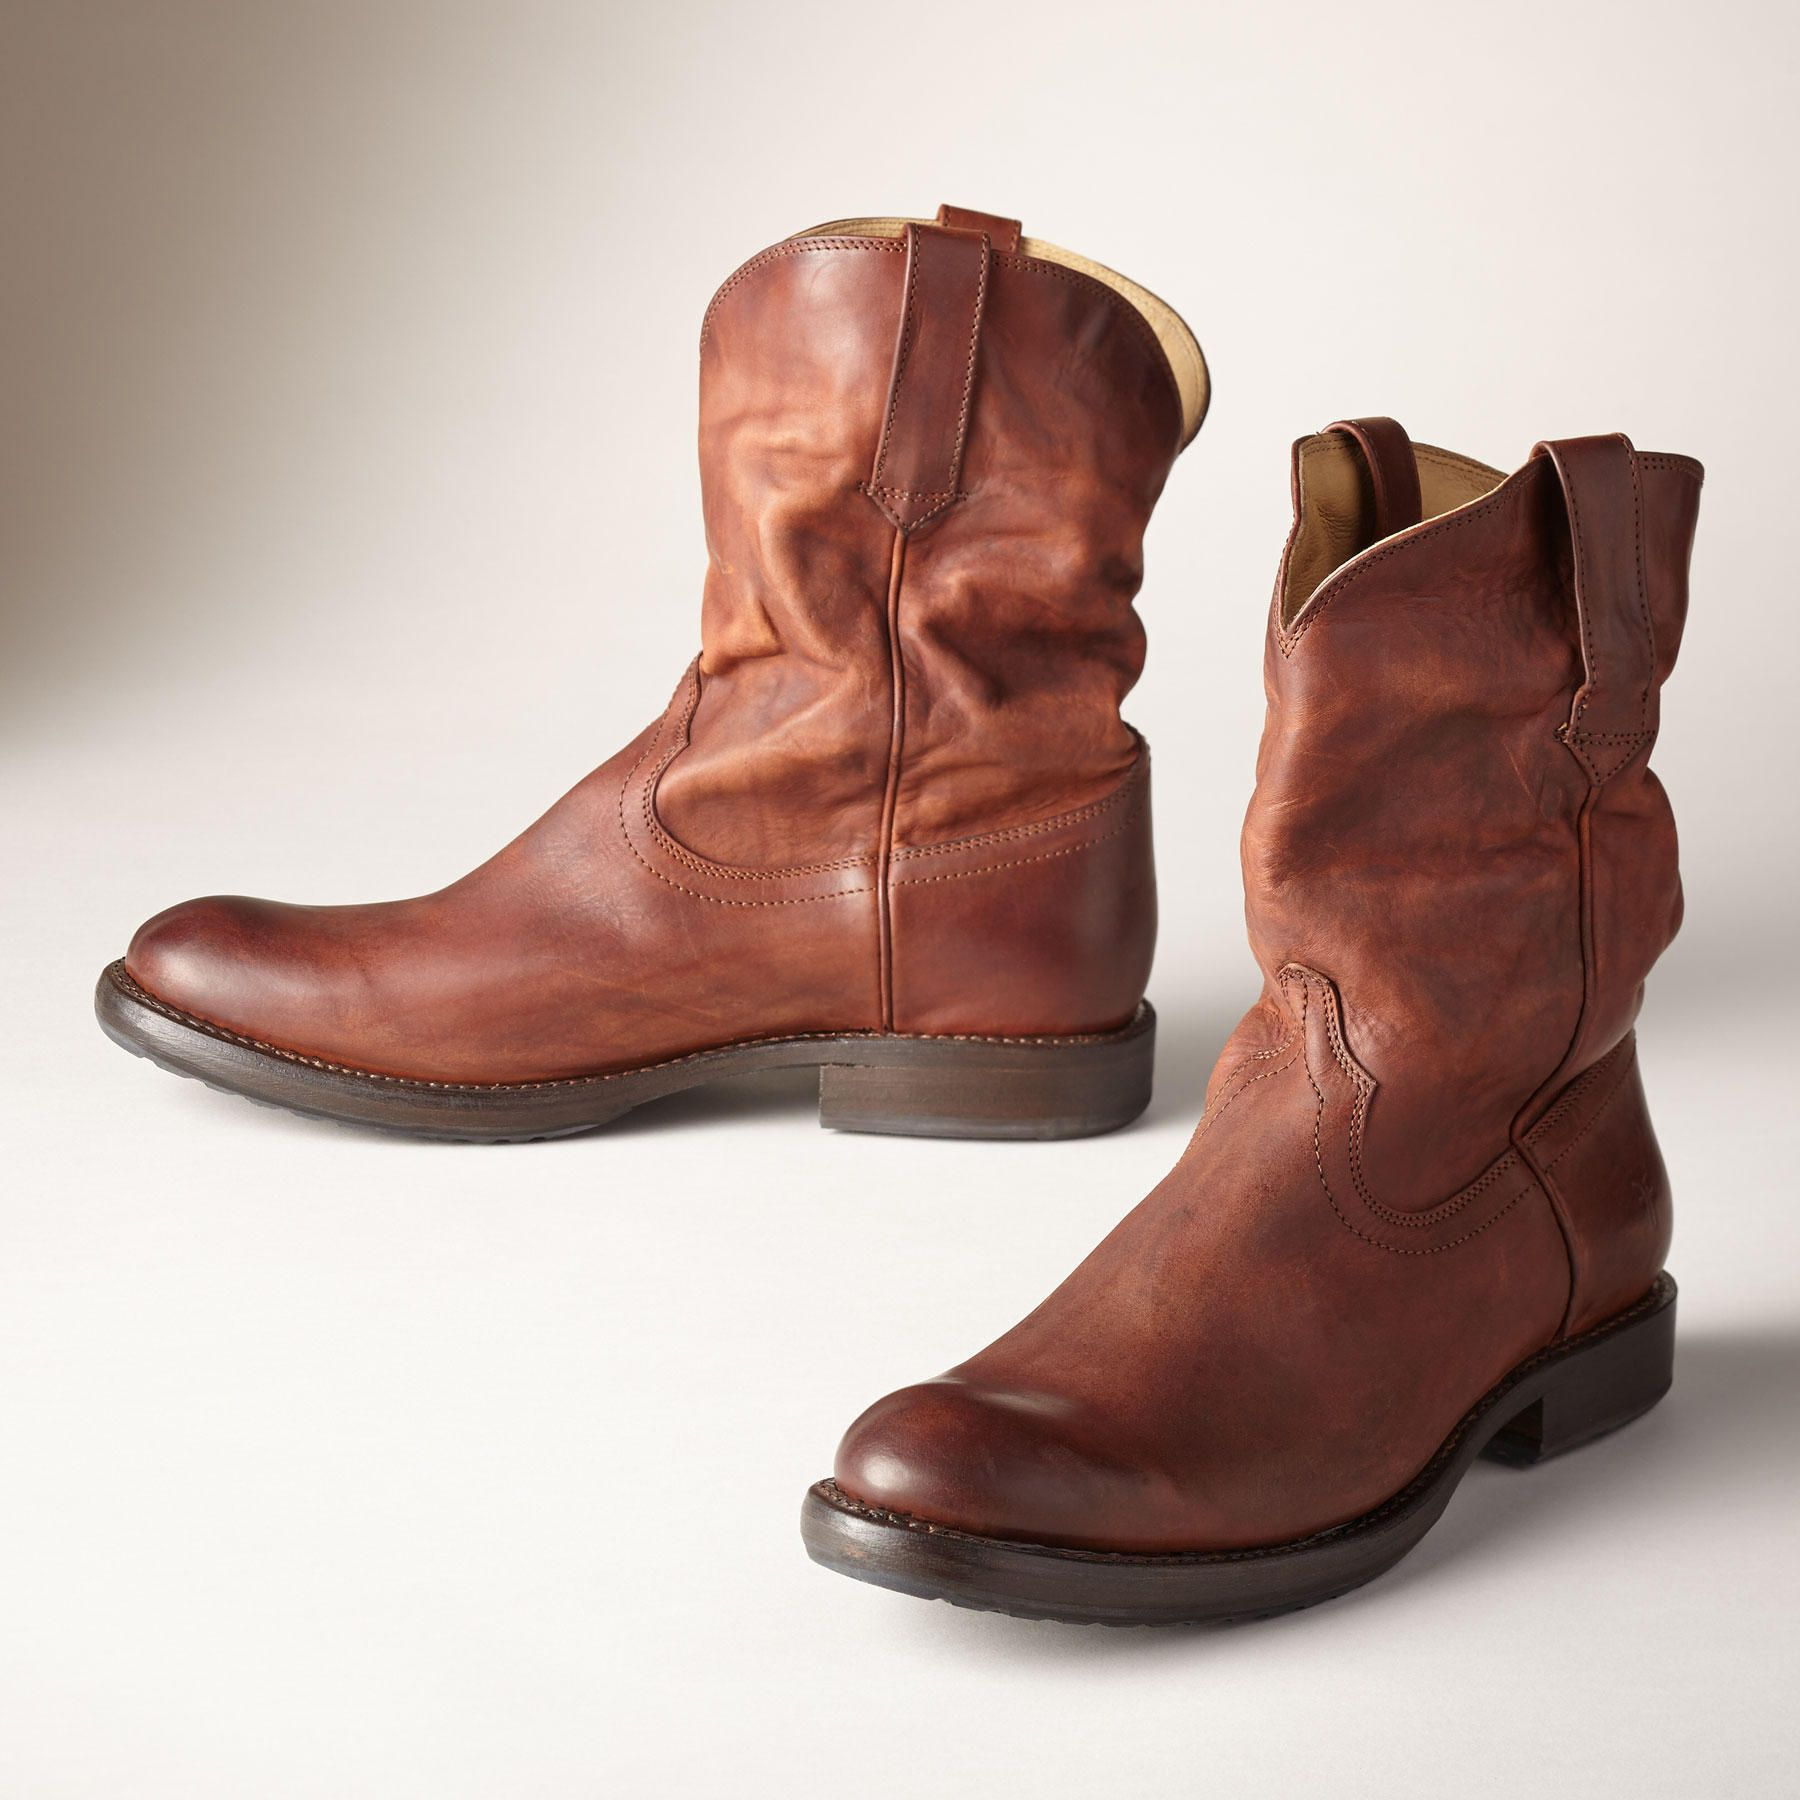 acebb0105d9 DUKE ROPER BOOTS BY FRYE -- Frye® perfects the wear anywhere ...